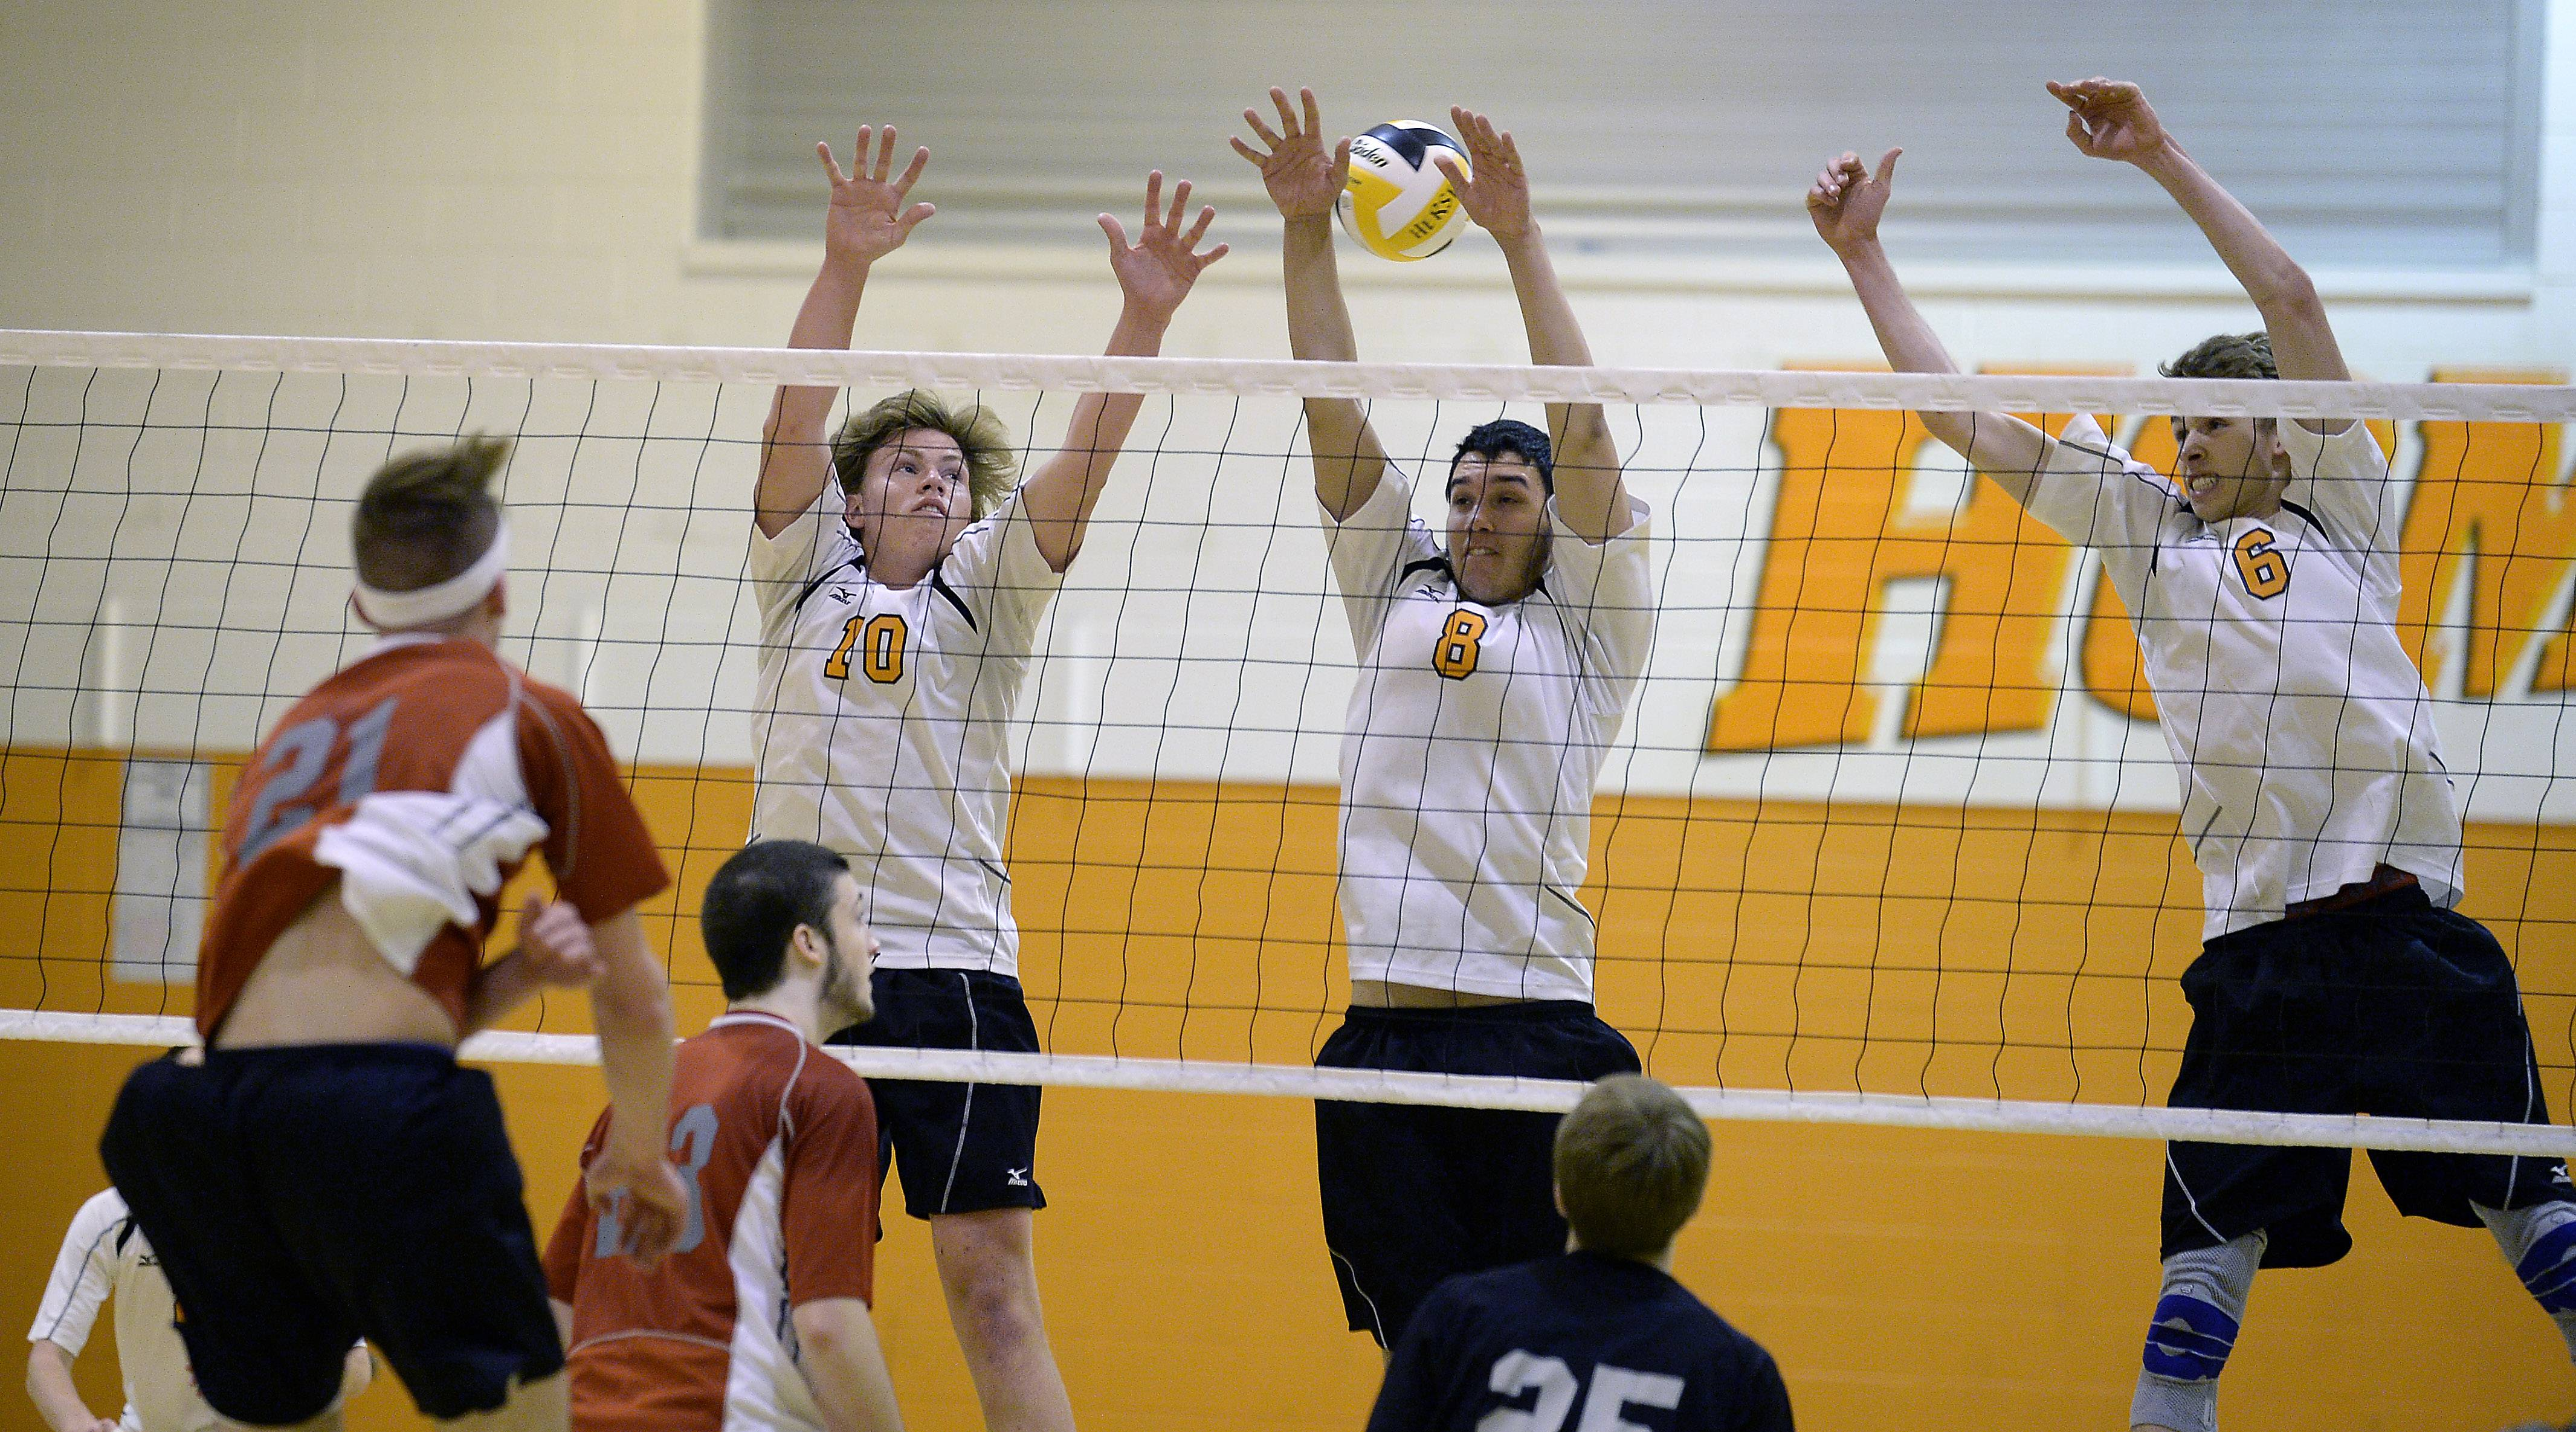 Palatine's Jacob Niedzwicki fires one through the arms of Hersey's defensive wall of Matt Torvik, Jordan Saeed and Bart Migus in game one of the boys varsity volleyball at Hersey High School on Thursday.